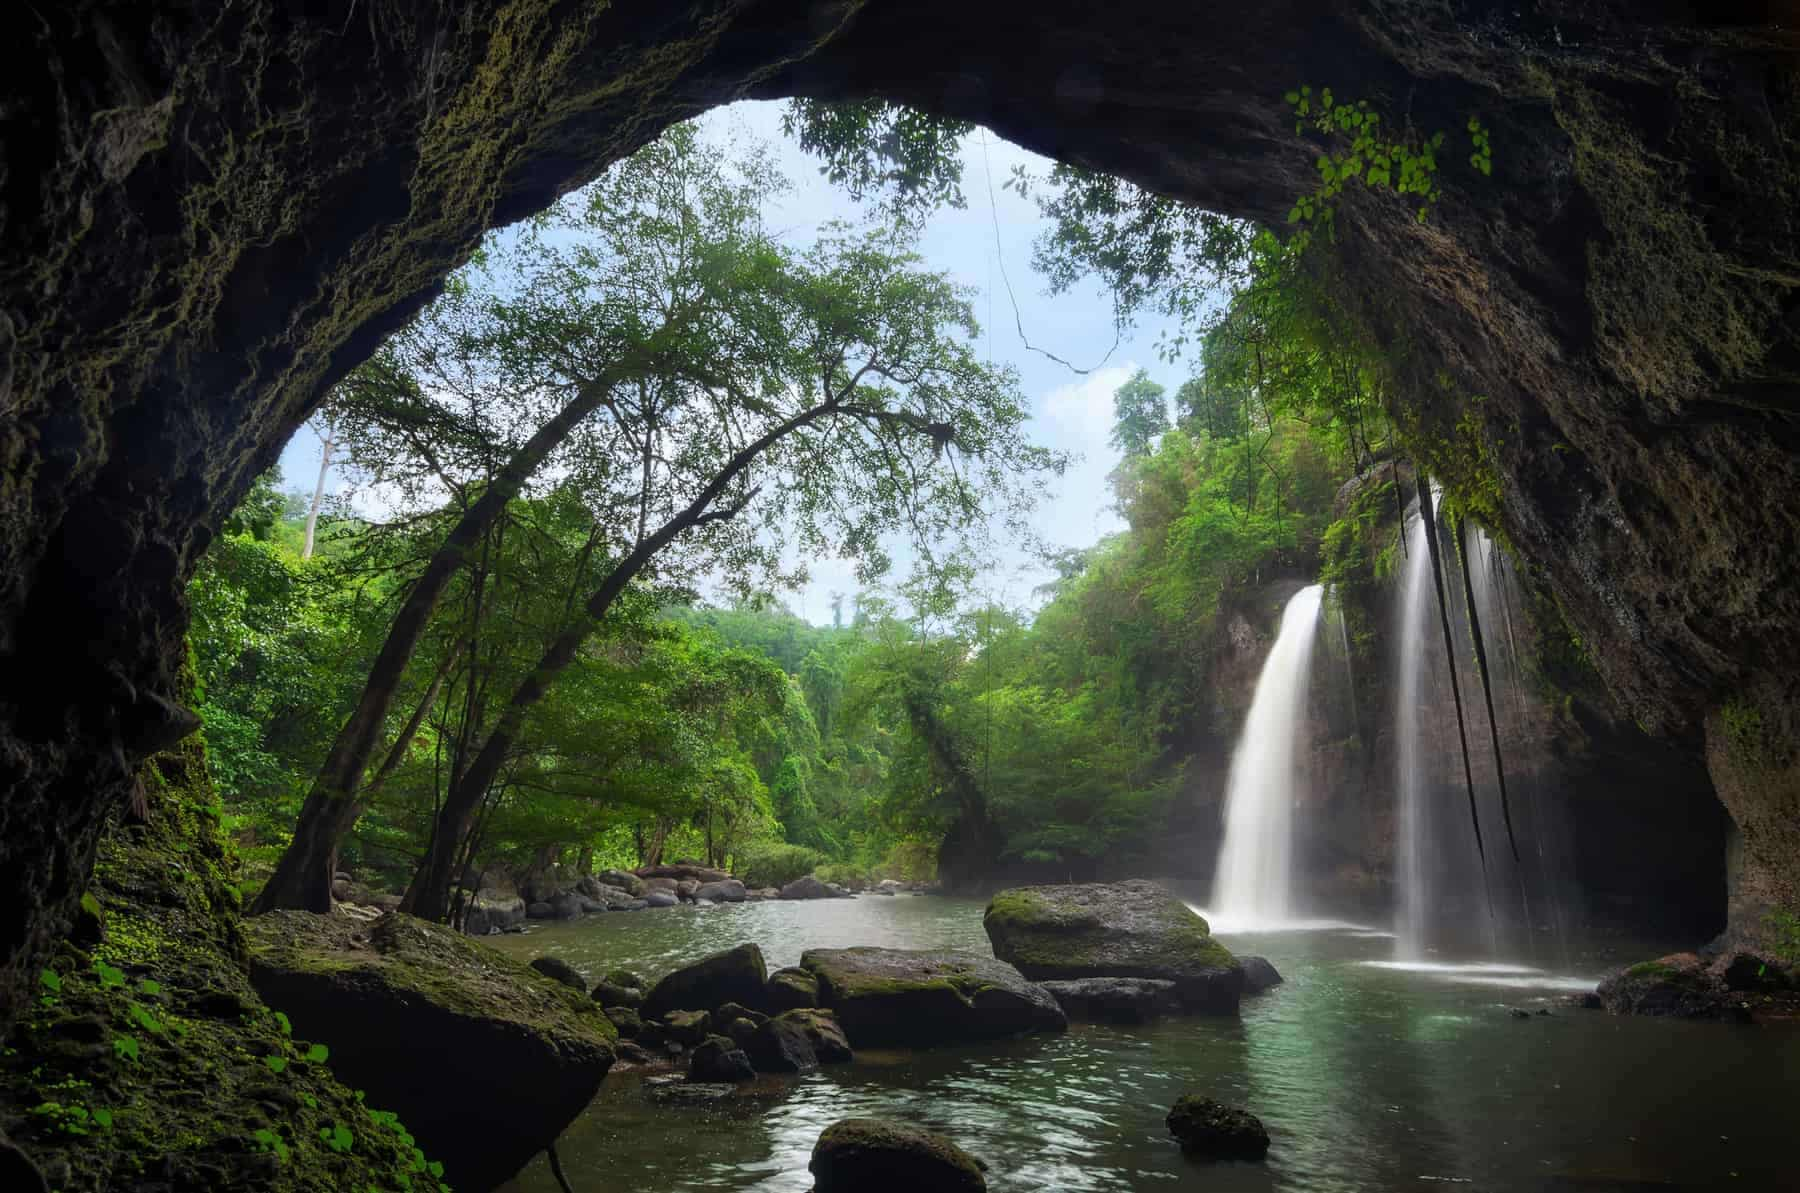 Cave in Heo Suwat Waterfall Khao Yai National Park in Thailand